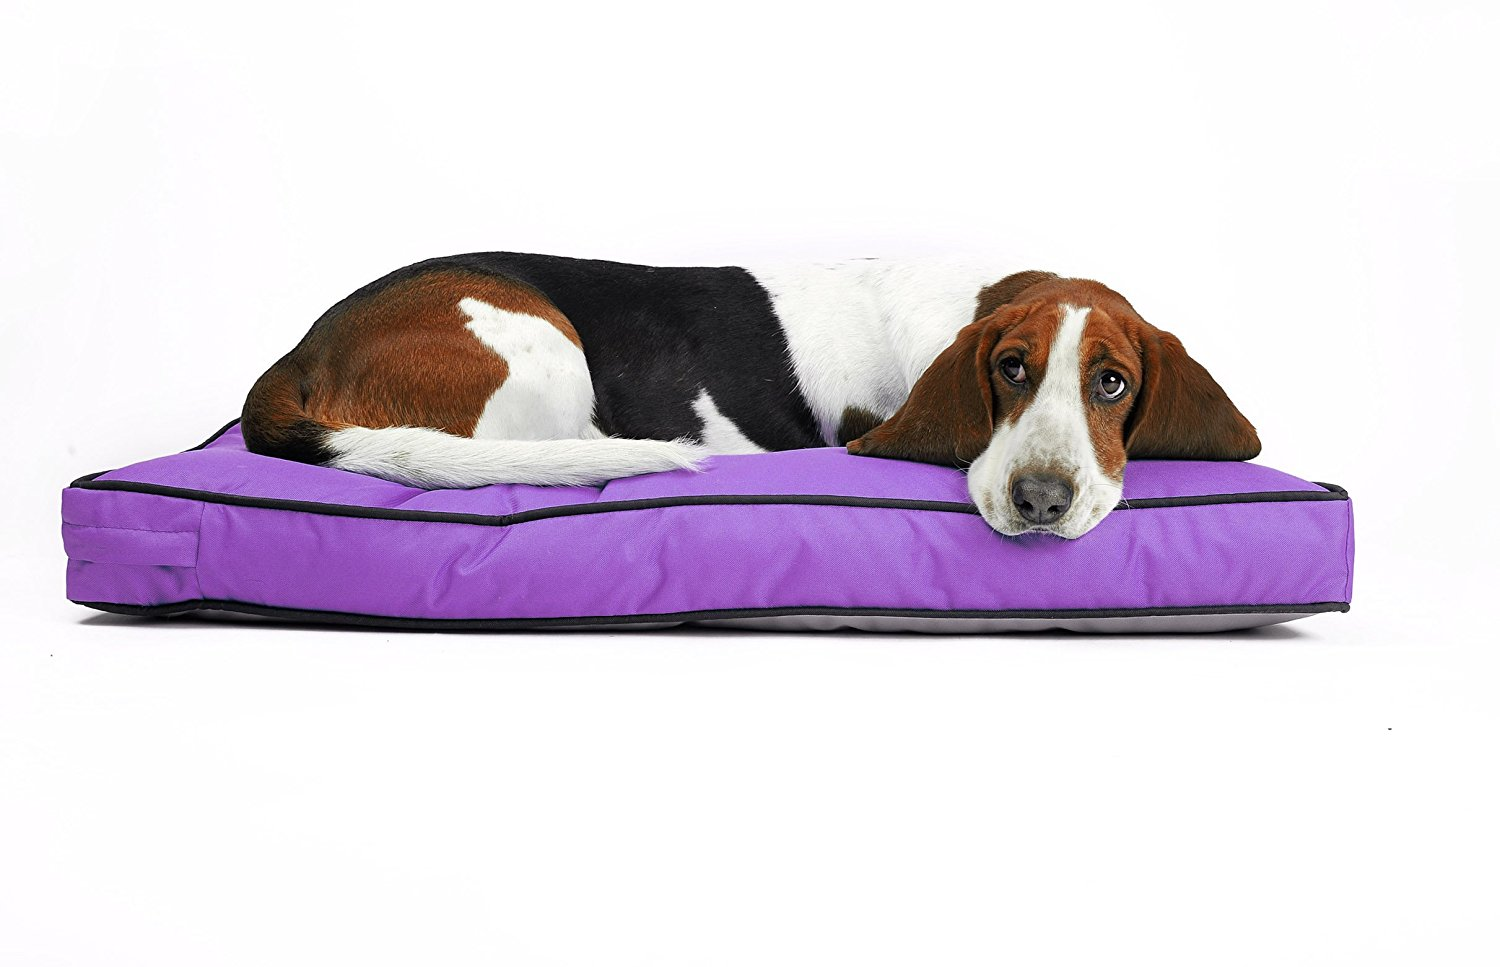 Pitbull Dog Toys | Hypoallergenic Dog Beds | Chew Proof Dog Bed